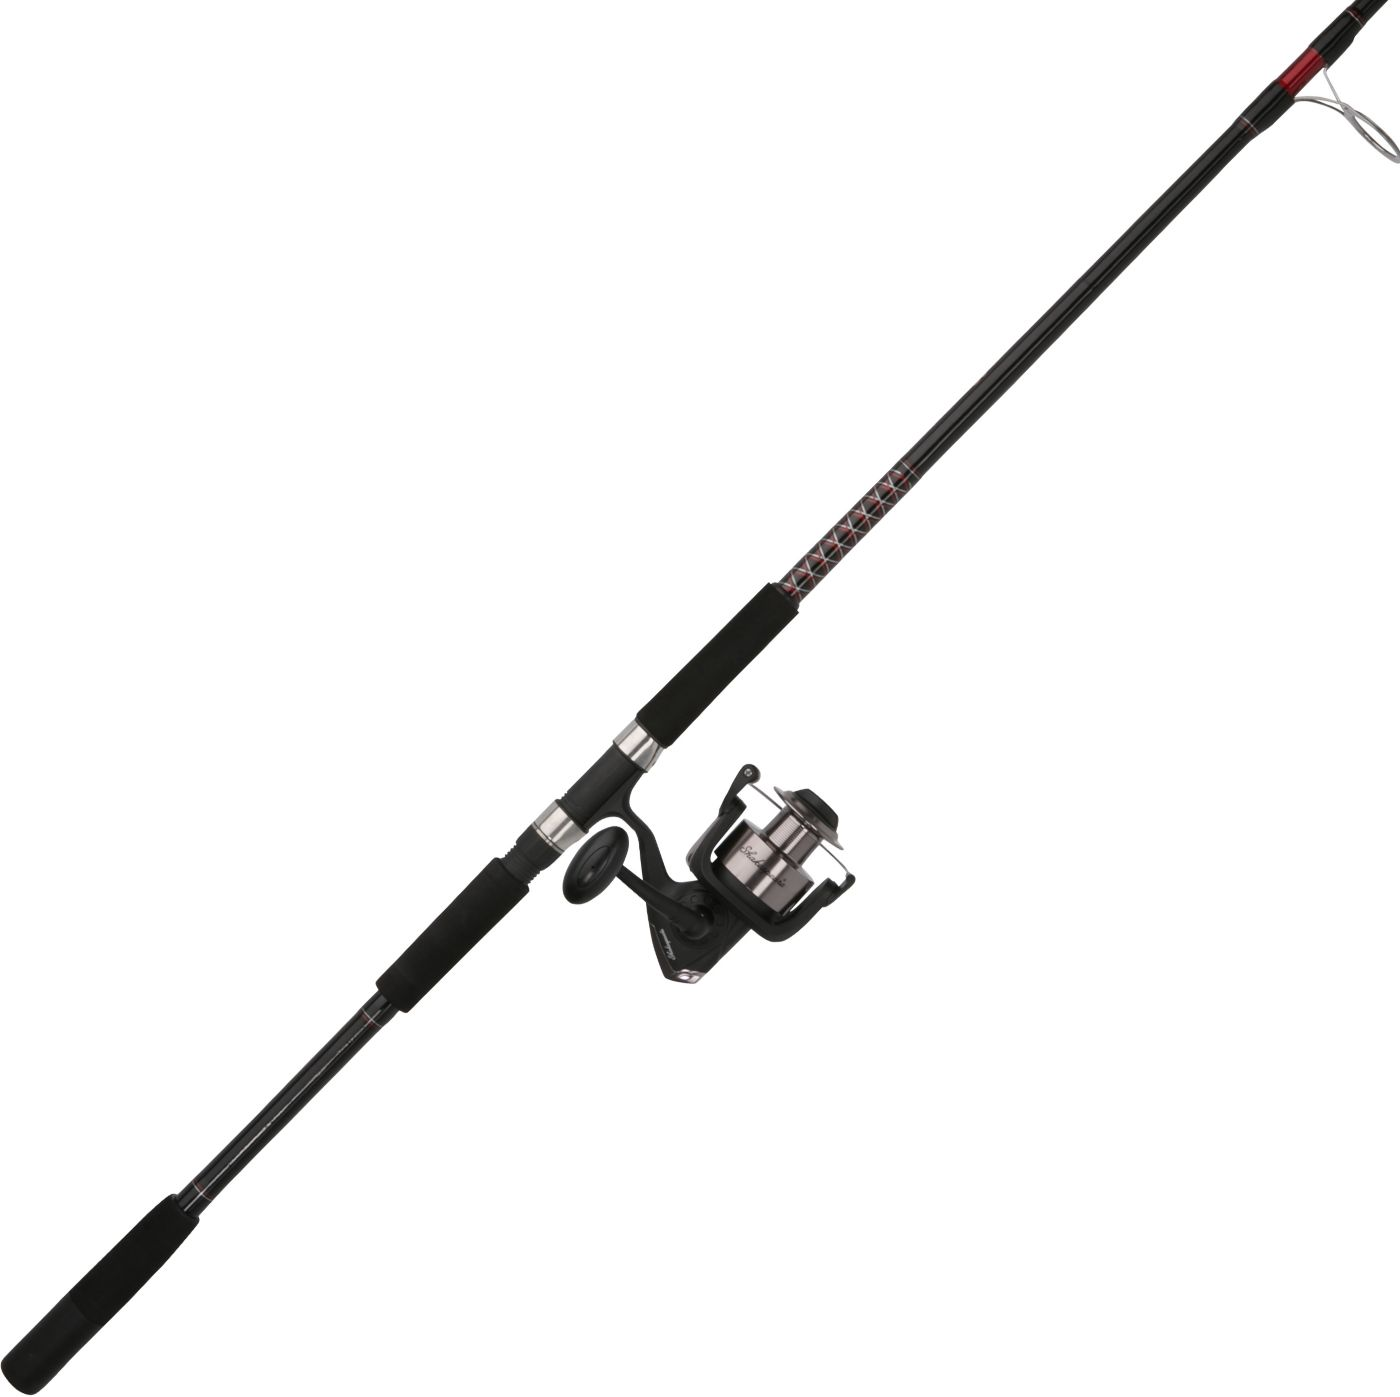 Shakespeare 2017 Ugly Stik Bigwater 2-Piece Spinning Combos